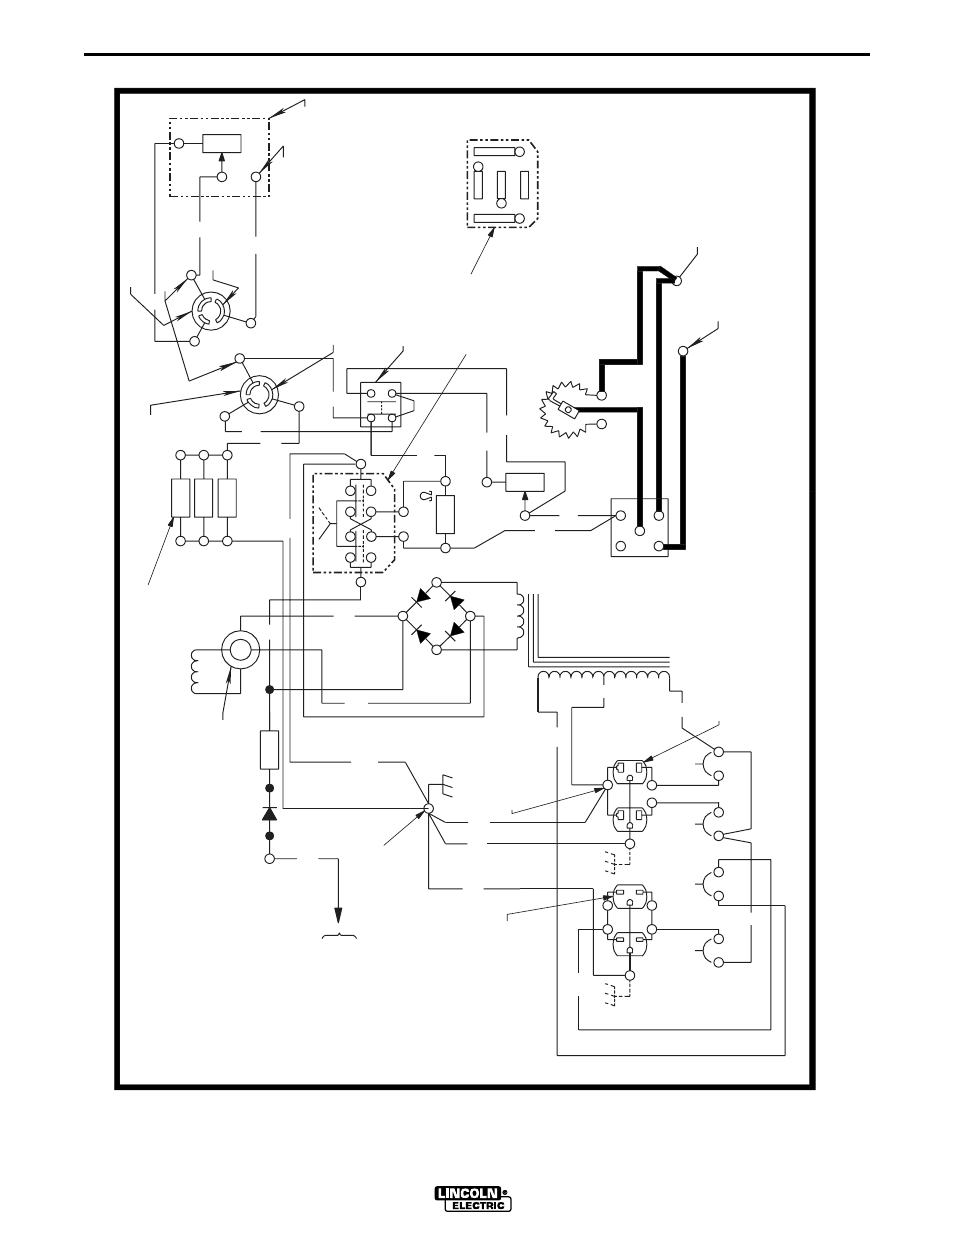 small resolution of lincoln ac 225 wiring diagram wiring diagrams scematic lincoln 225 ac power requirements lincoln 225 ac schematic